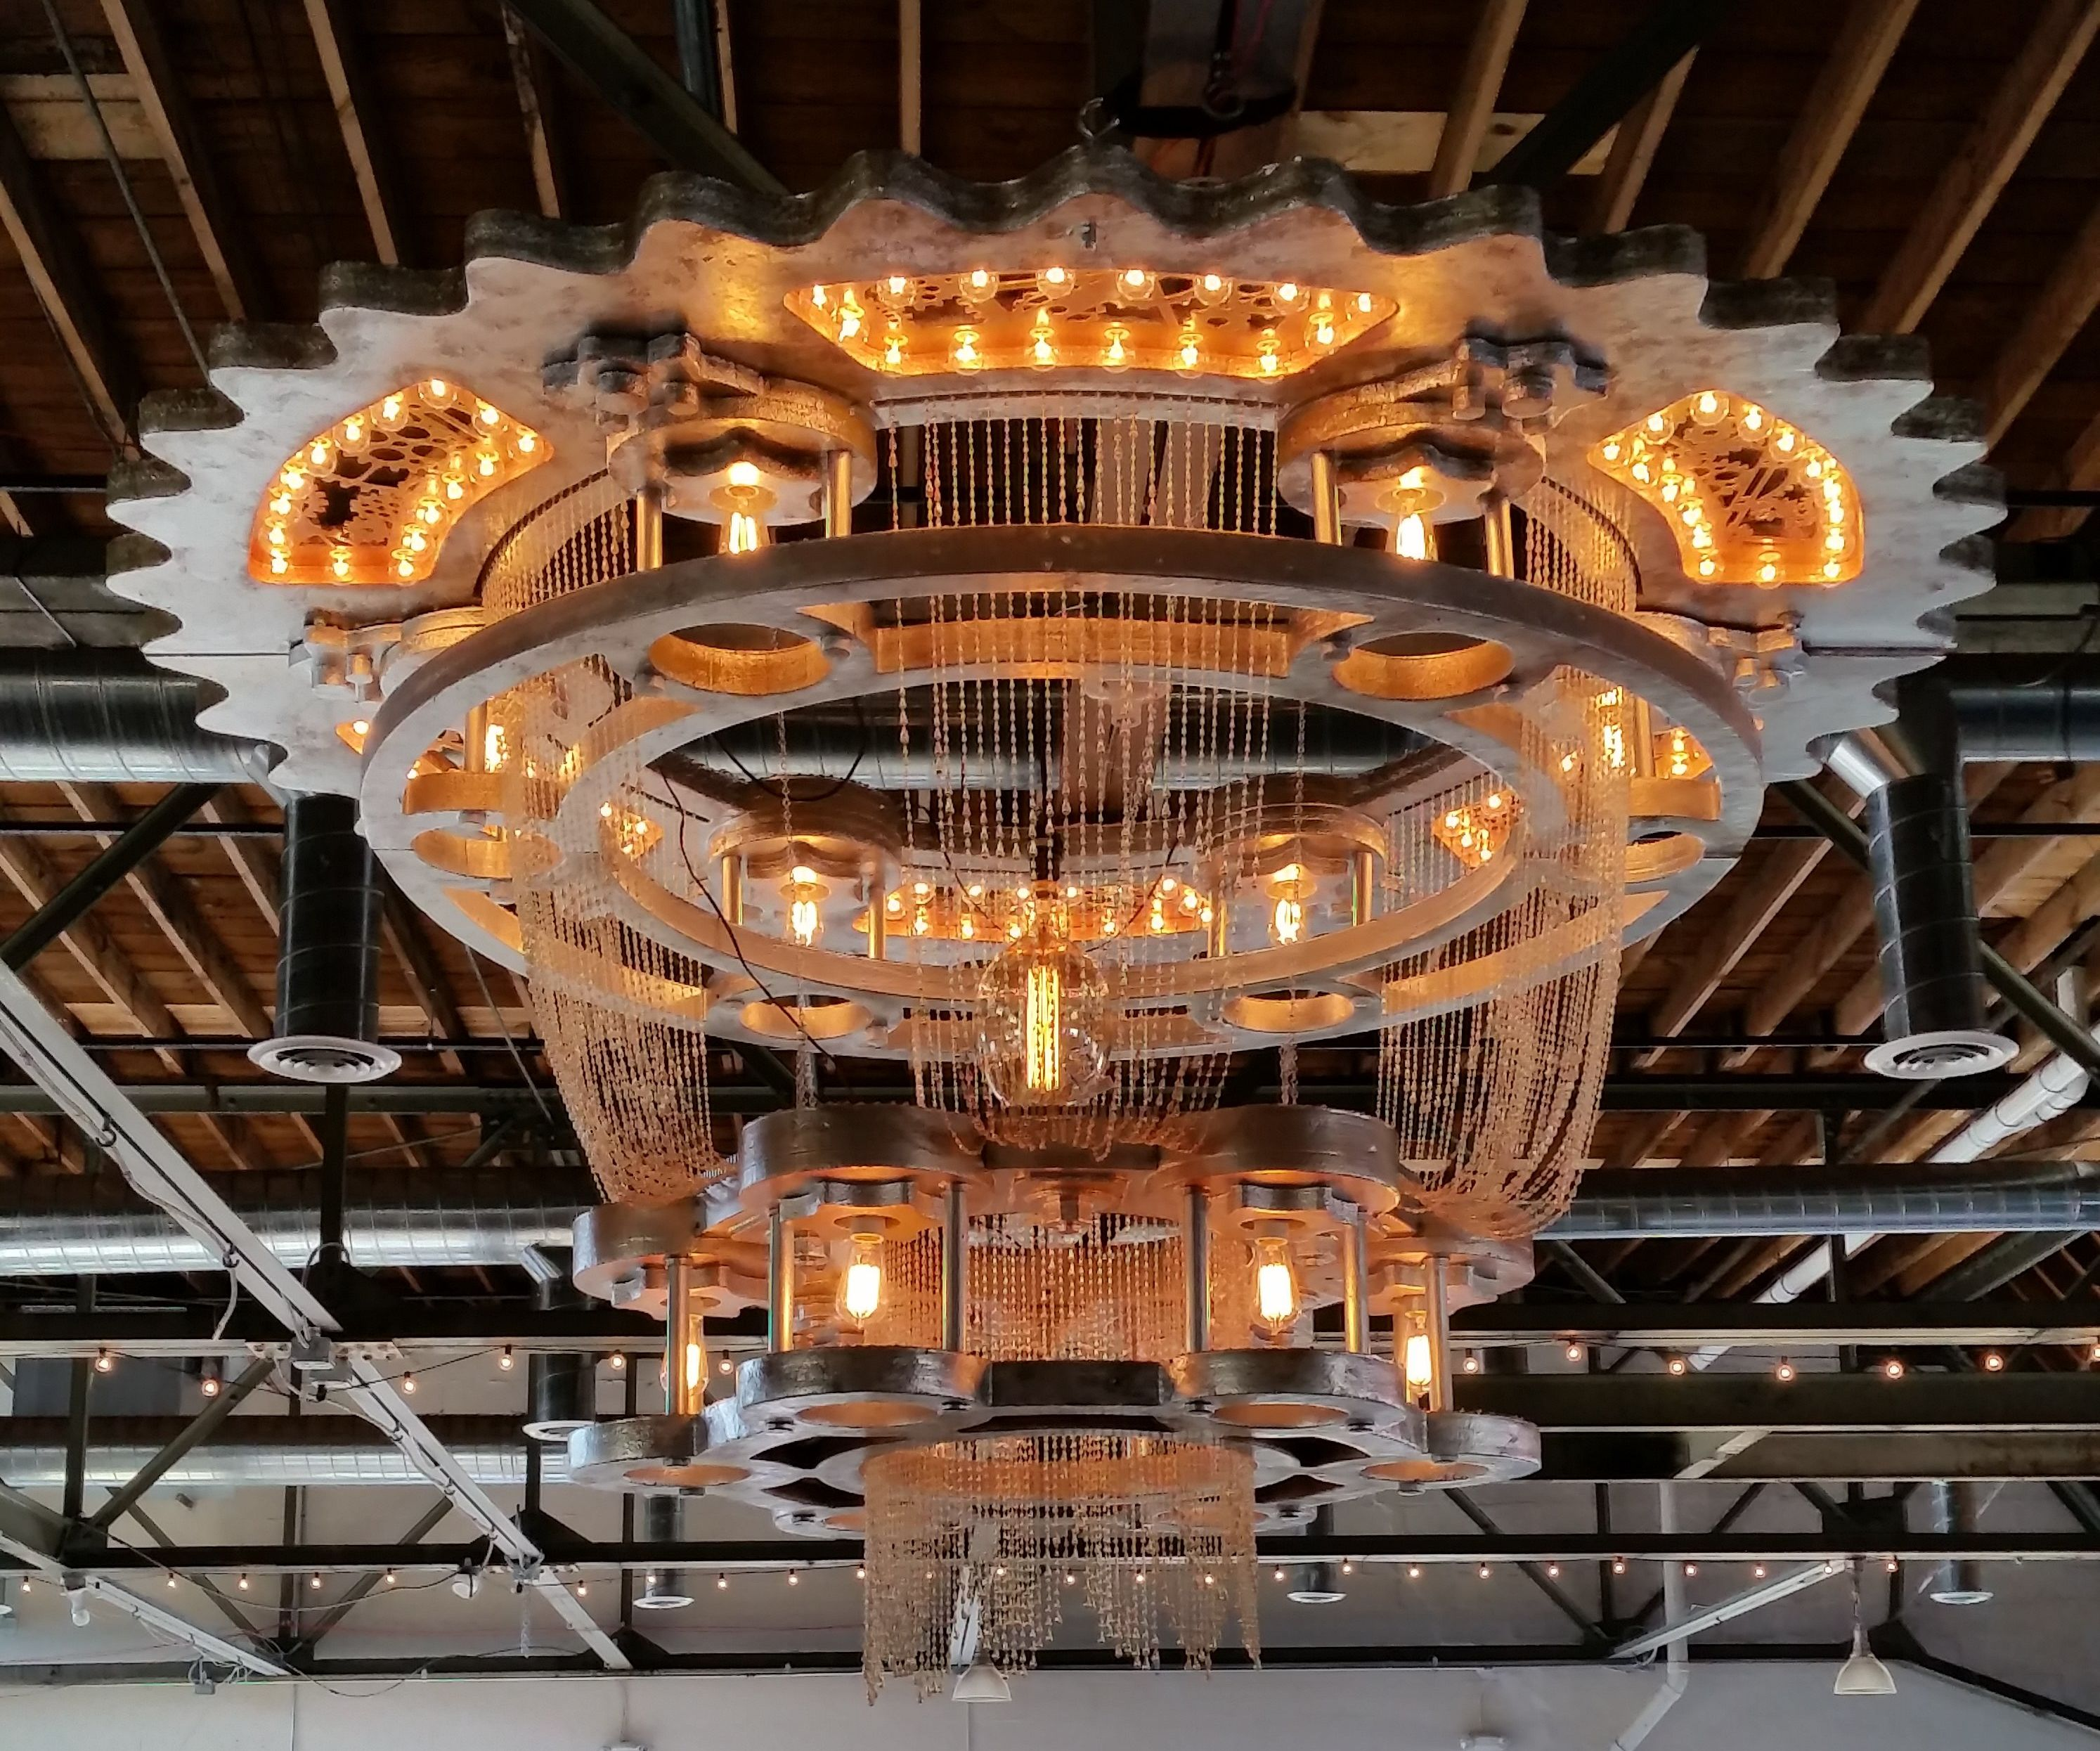 The Packard Chandelier - I made it at TECHSHOP!